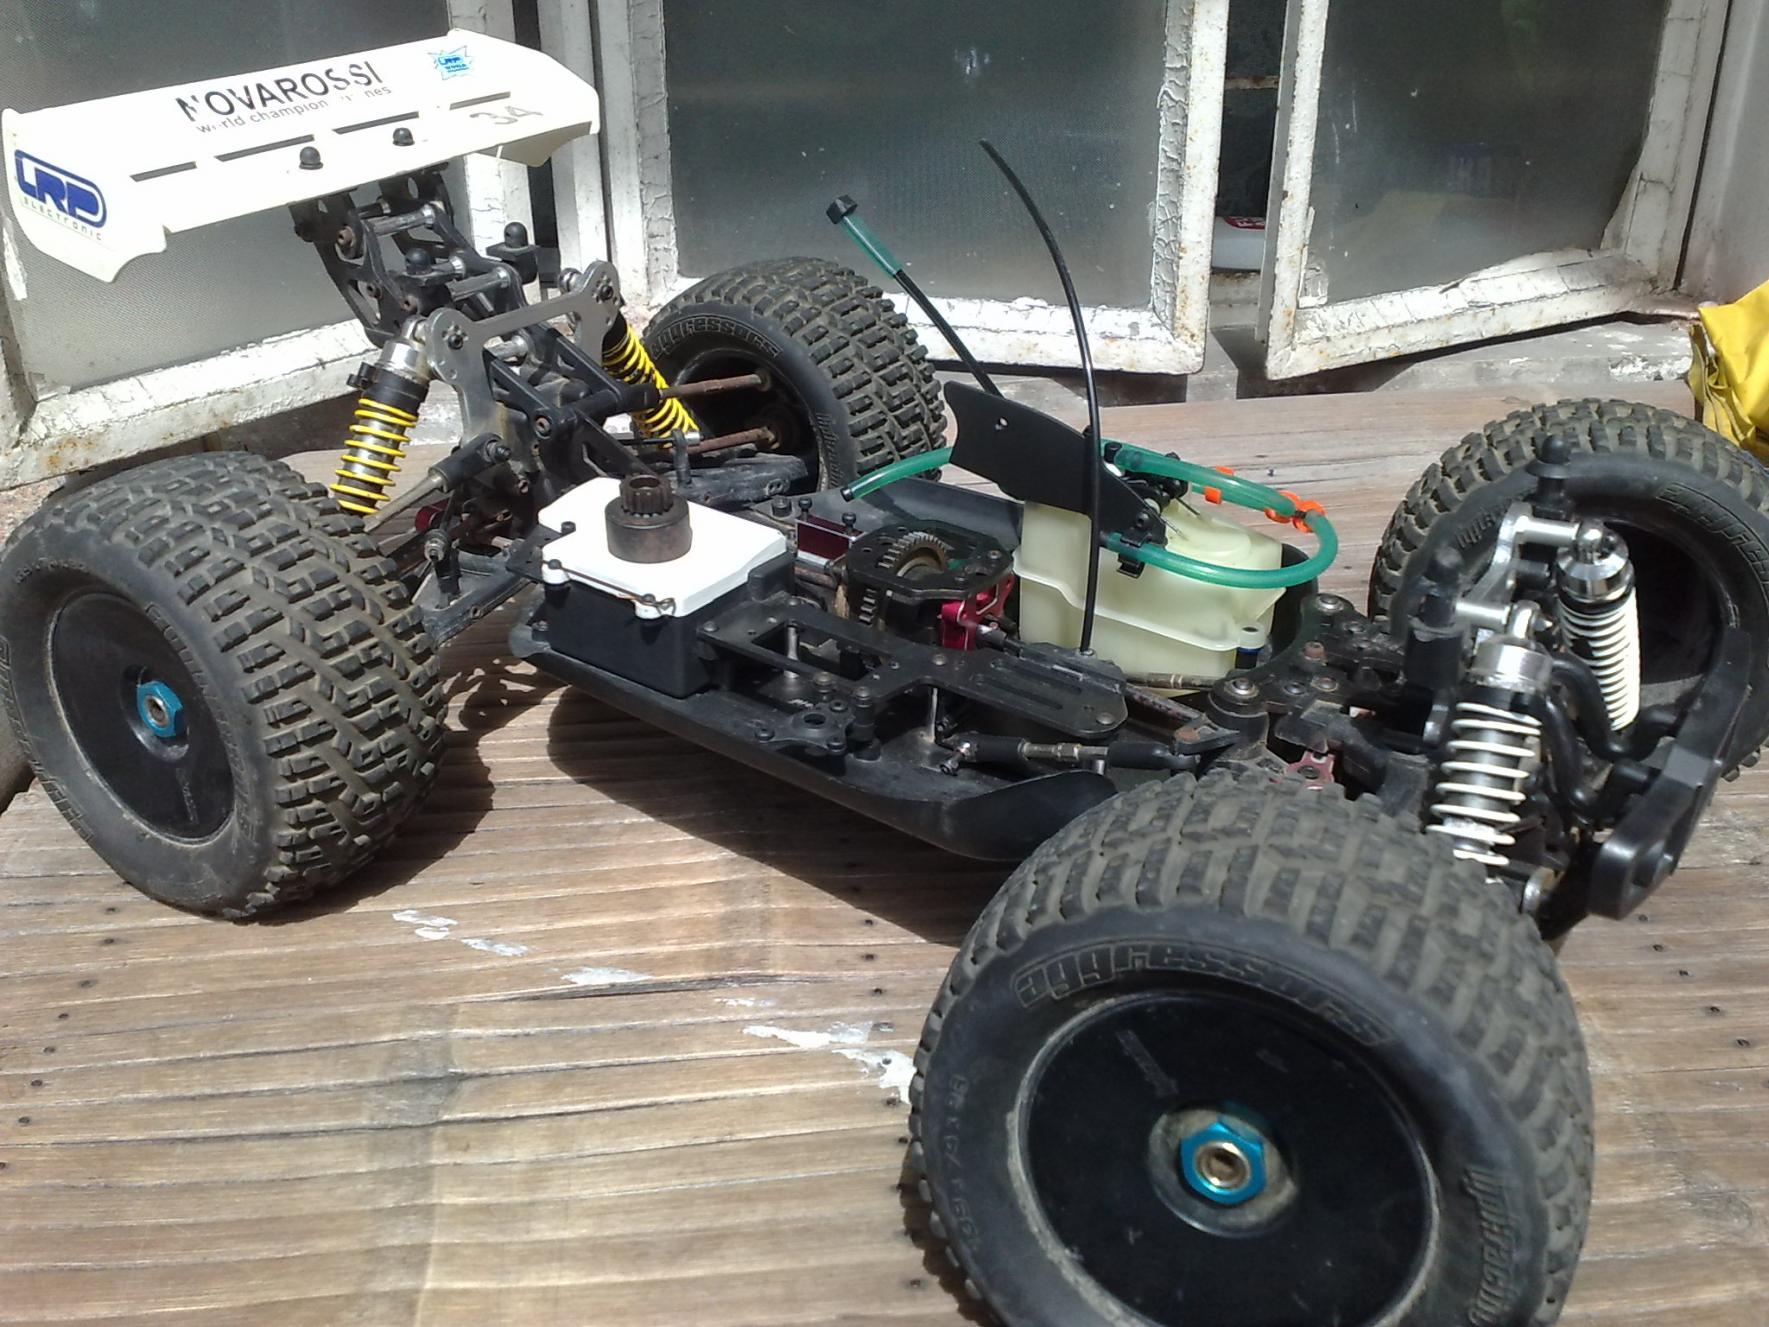 hpi savage ss 4.6 manual